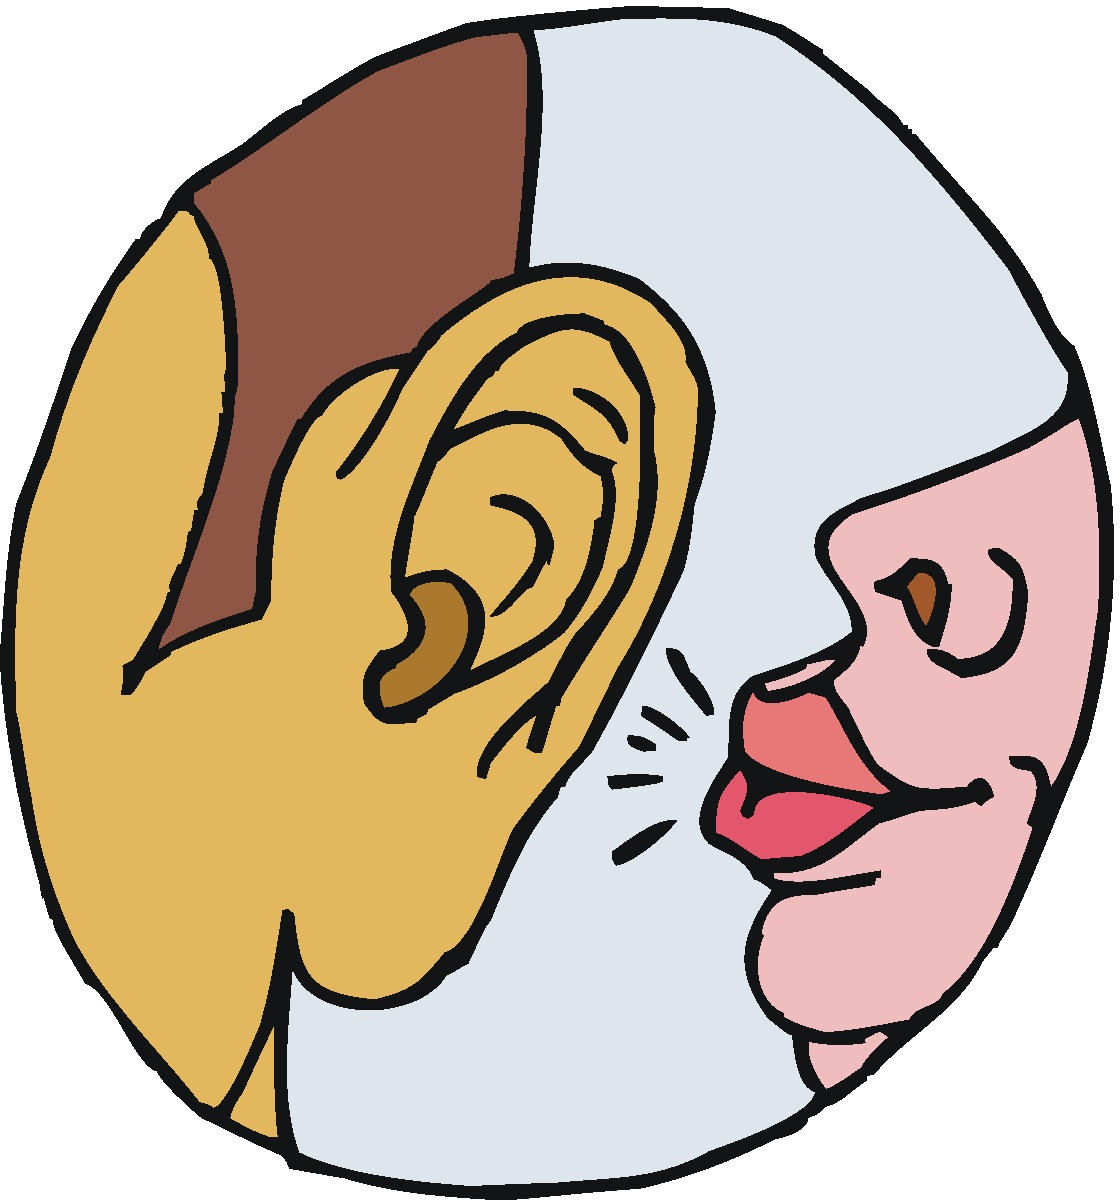 Free Hearing Cliparts, Download Free Clip Art, Free Clip Art.